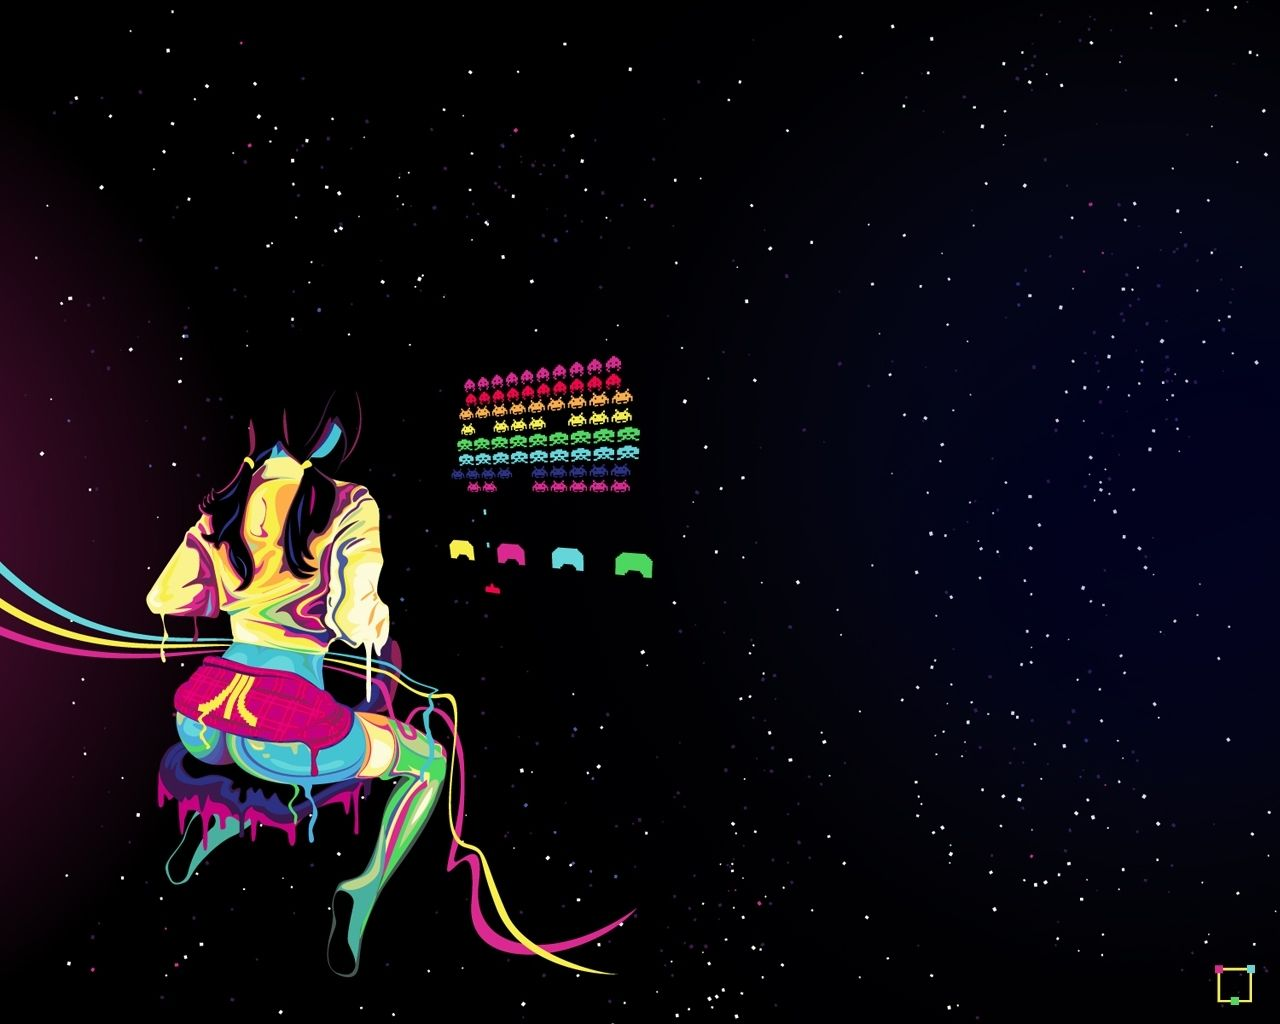 Space Invaders Backgrounds Posted By Samantha Mercado